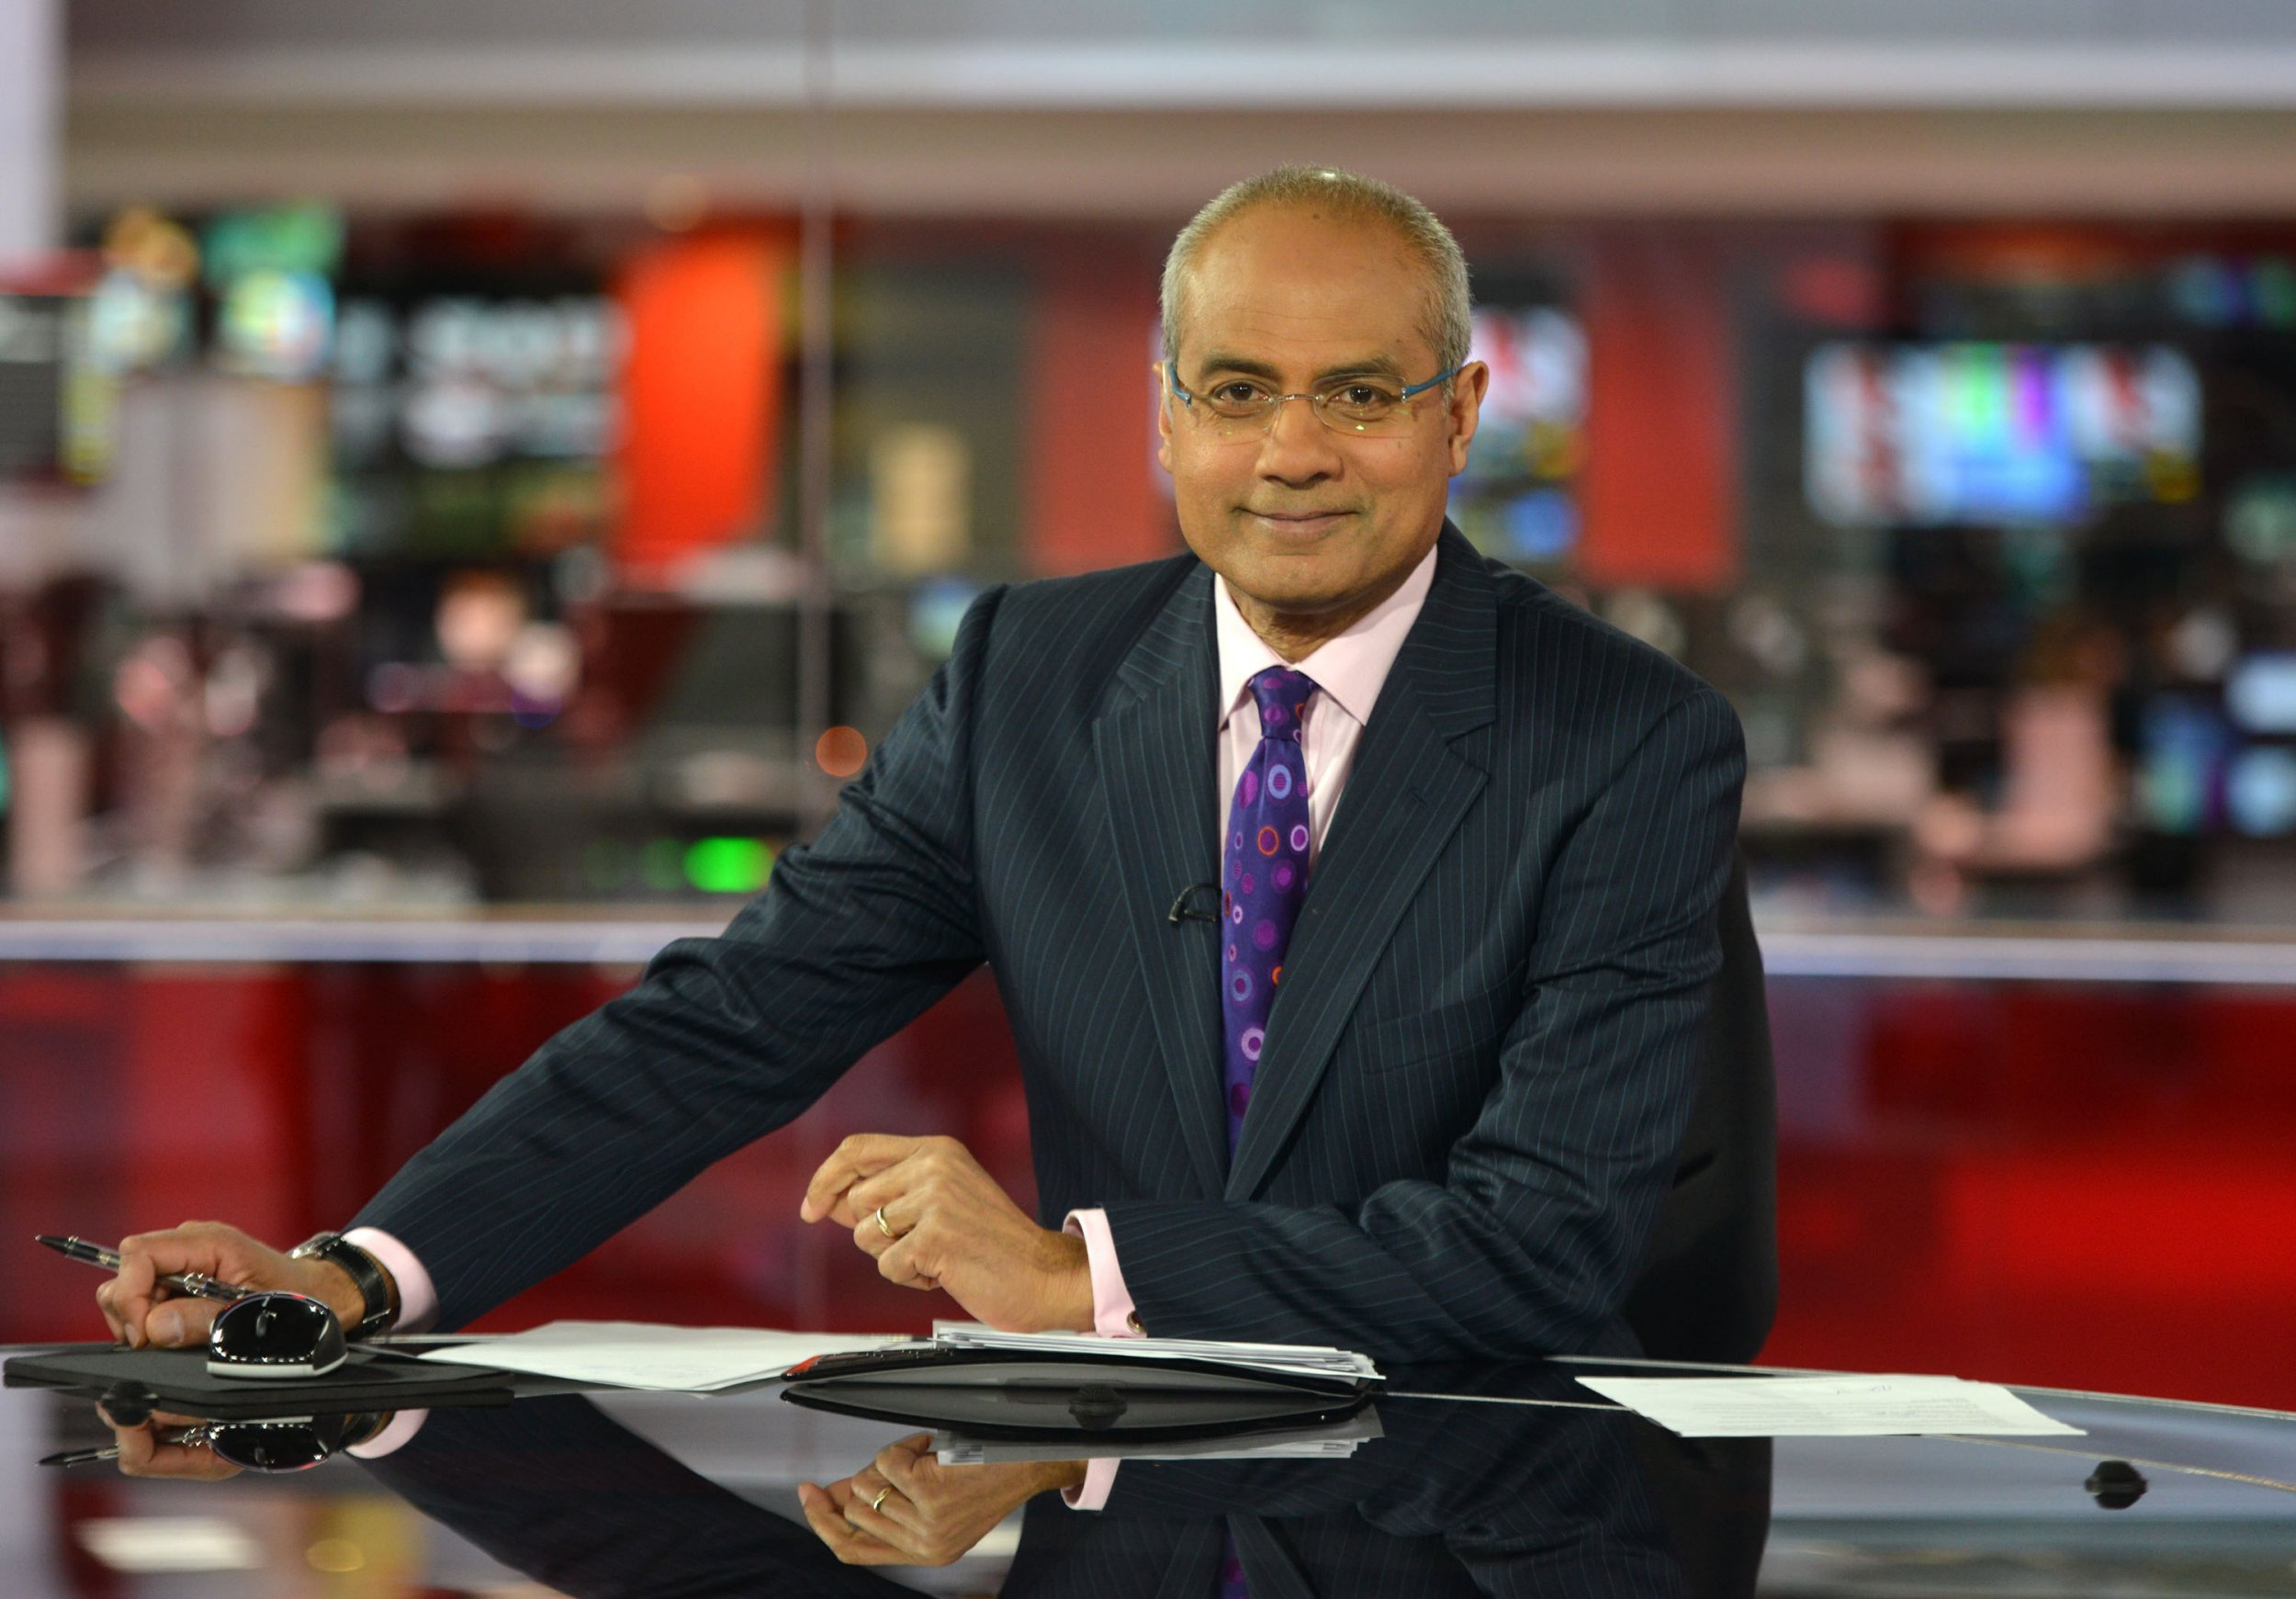 """For use in UK, Ireland or Benelux countries only Undated BBC handout photo of BBC newsreader George Alagiah, who said his cancer was caught """"very late"""" and may have been detected earlier if England had similar screening procedures to Scotland. PRESS ASSOCIATION Photo. Issue date: Sunday March 25, 2018. The 62-year-old presenter, who lives in London, discovered his stage four bowel cancer had returned before Christmas. See PA story HEALTH Alagiah. Photo credit should read: Jeff Overs/BBC/PA Wire NOTE TO EDITORS: Not for use more than 21 days after issue. You may use this picture without charge only for the purpose of publicising or reporting on current BBC programming, personnel or other BBC output or activity within 21 days of issue. Any use after that time MUST be cleared through BBC Picture Publicity. Please credit the image to the BBC and any named photographer or independent programme maker, as described in the caption."""